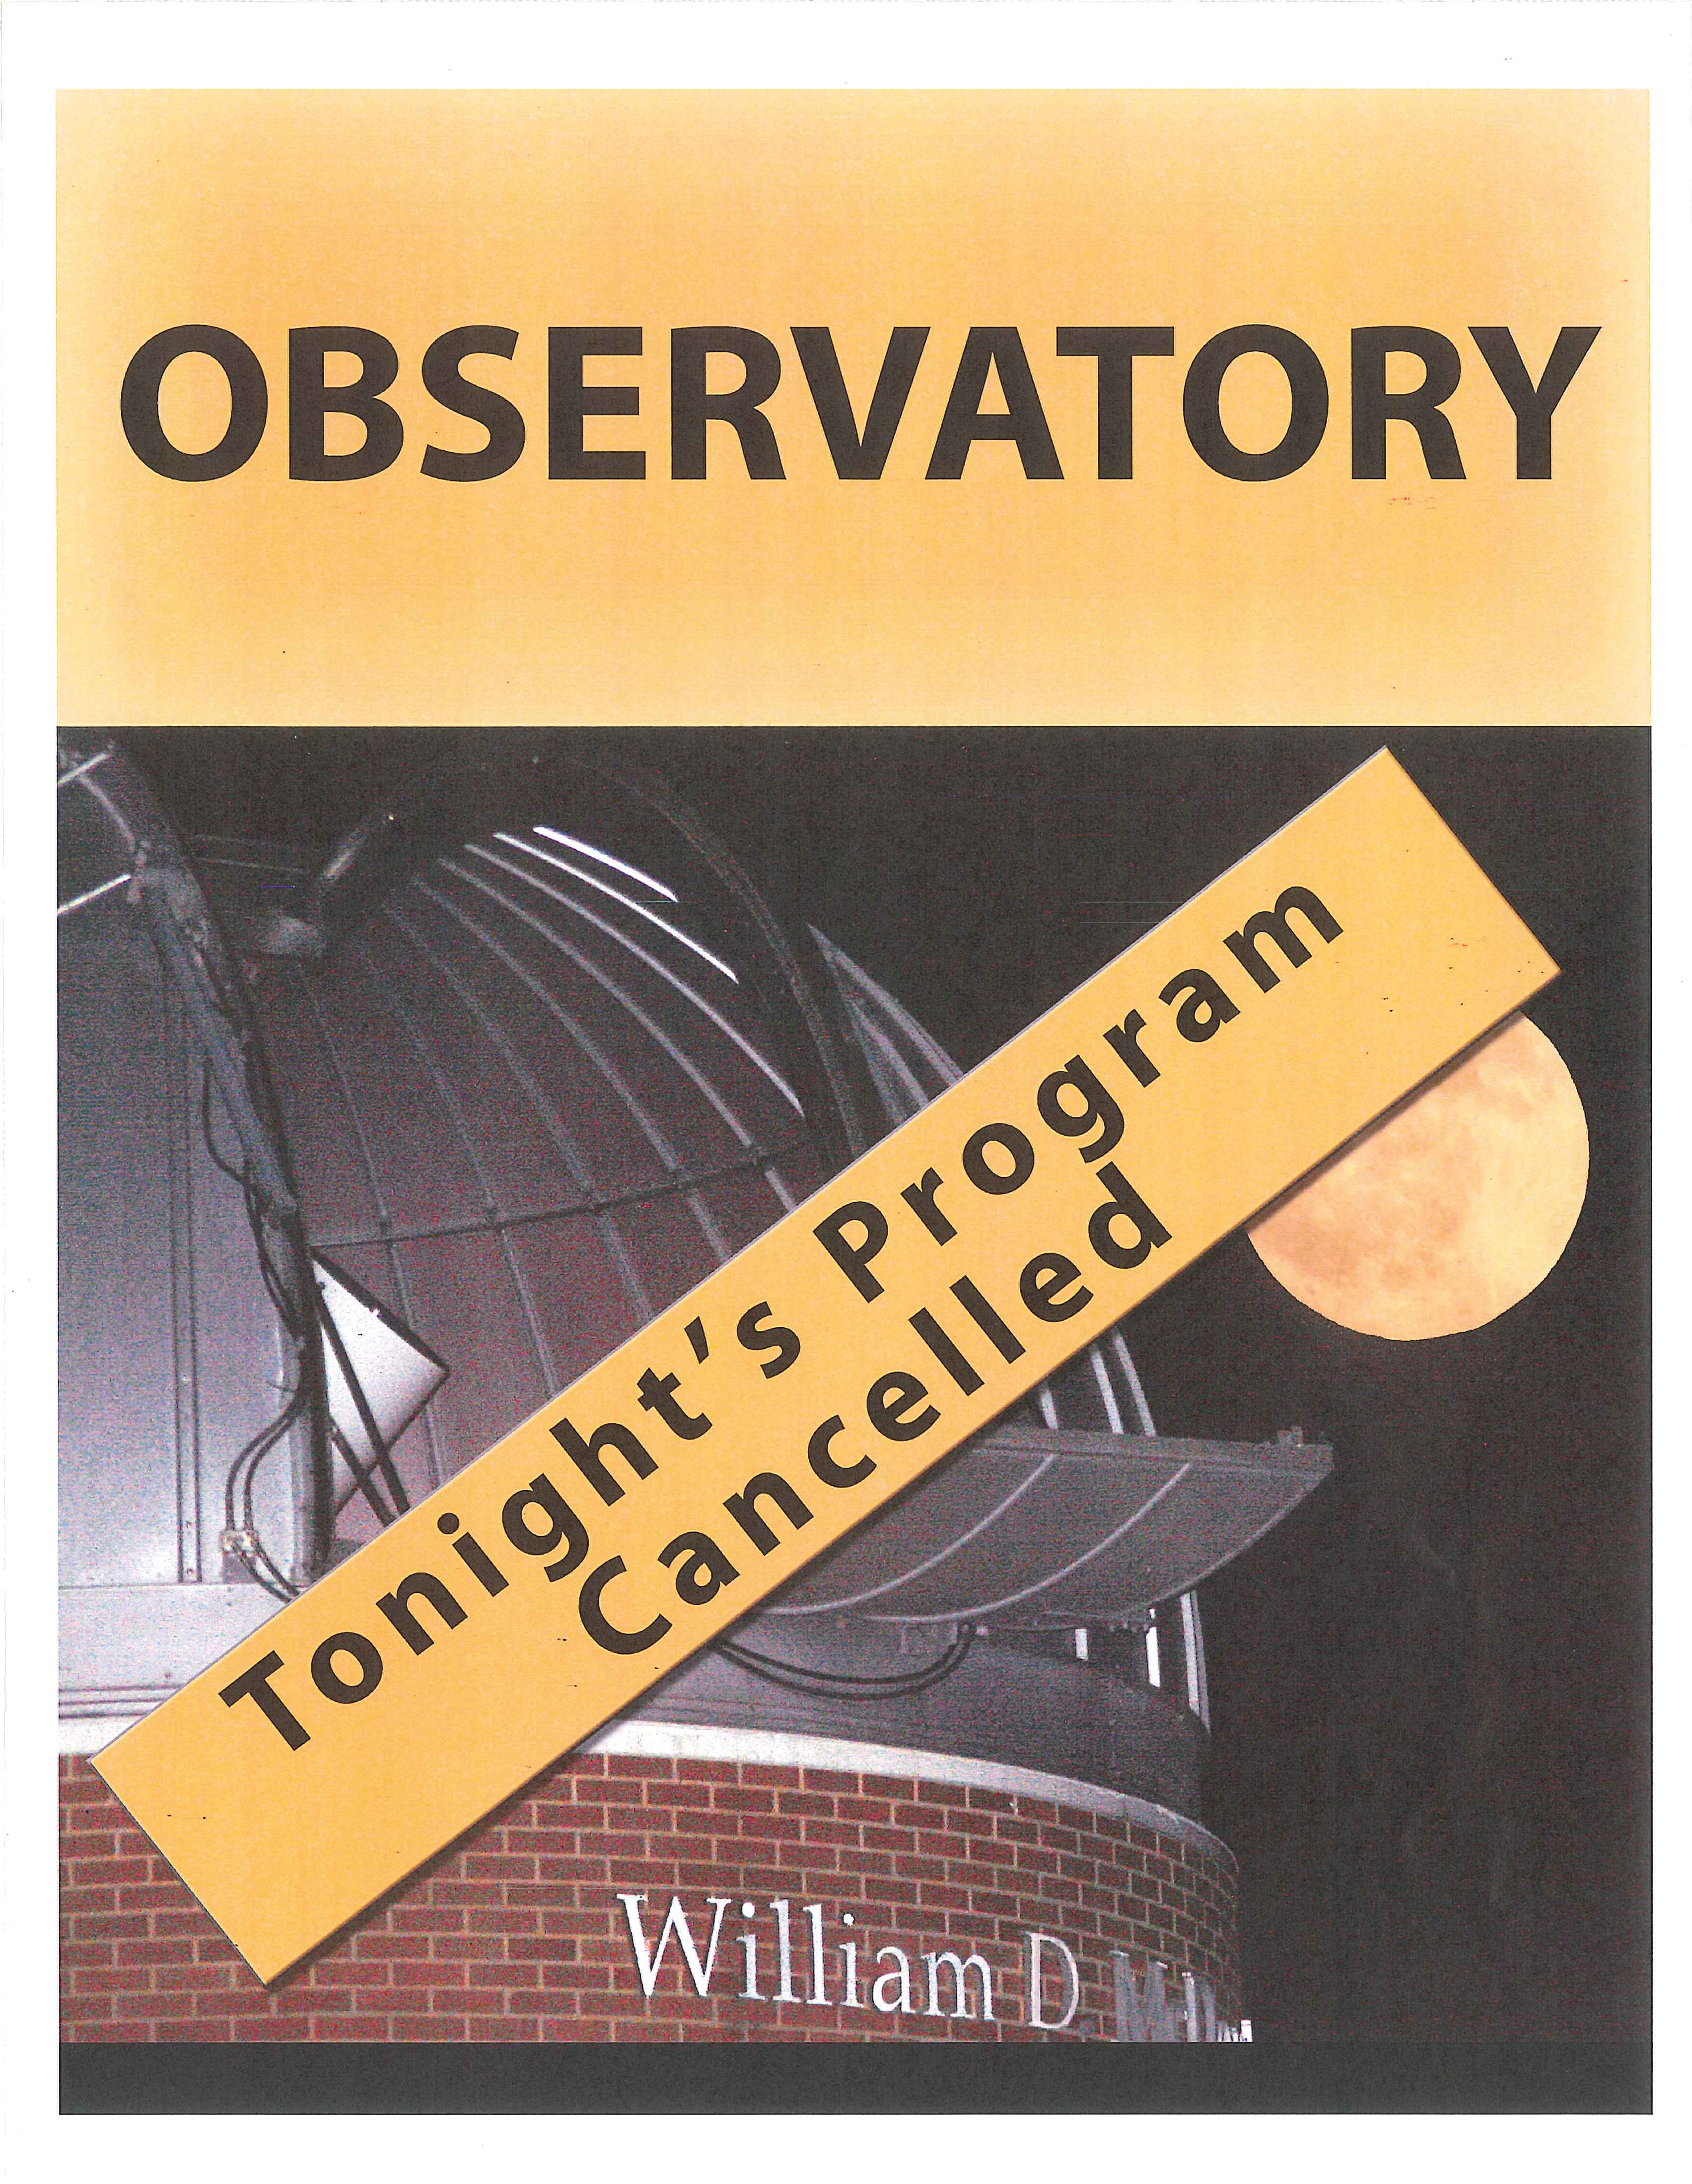 Observatory cancelled